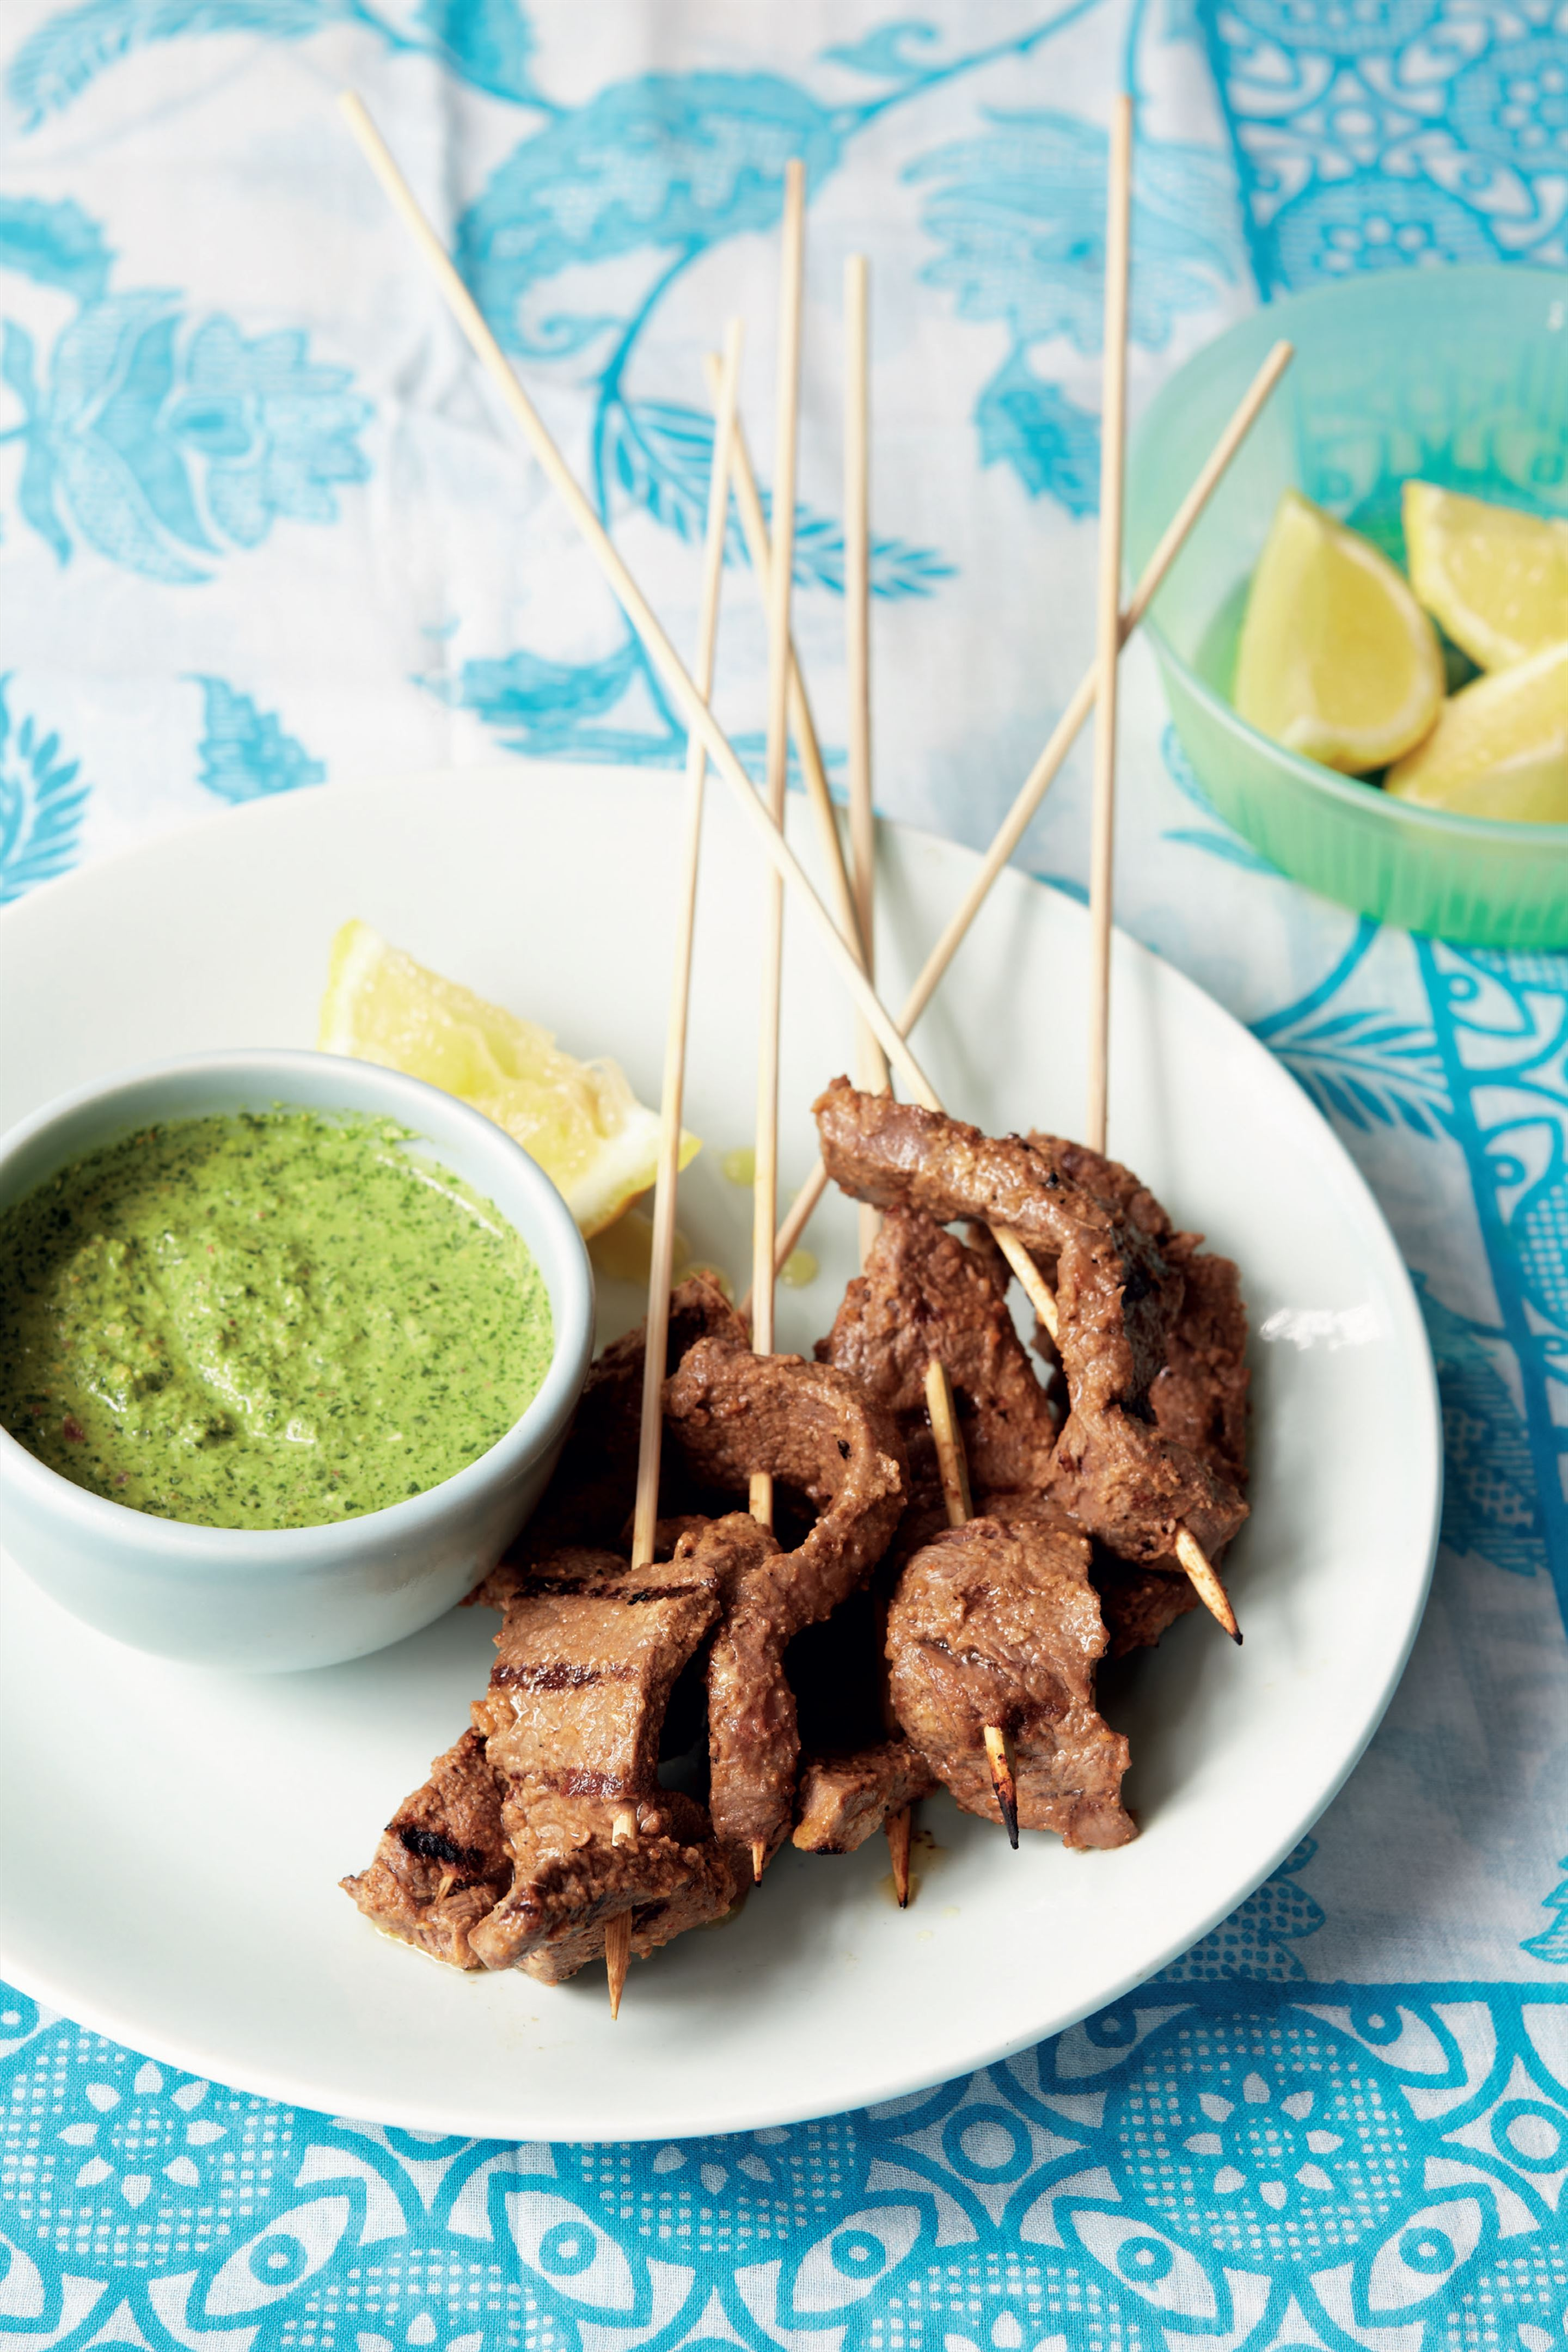 Griddled Bihari beef skewers